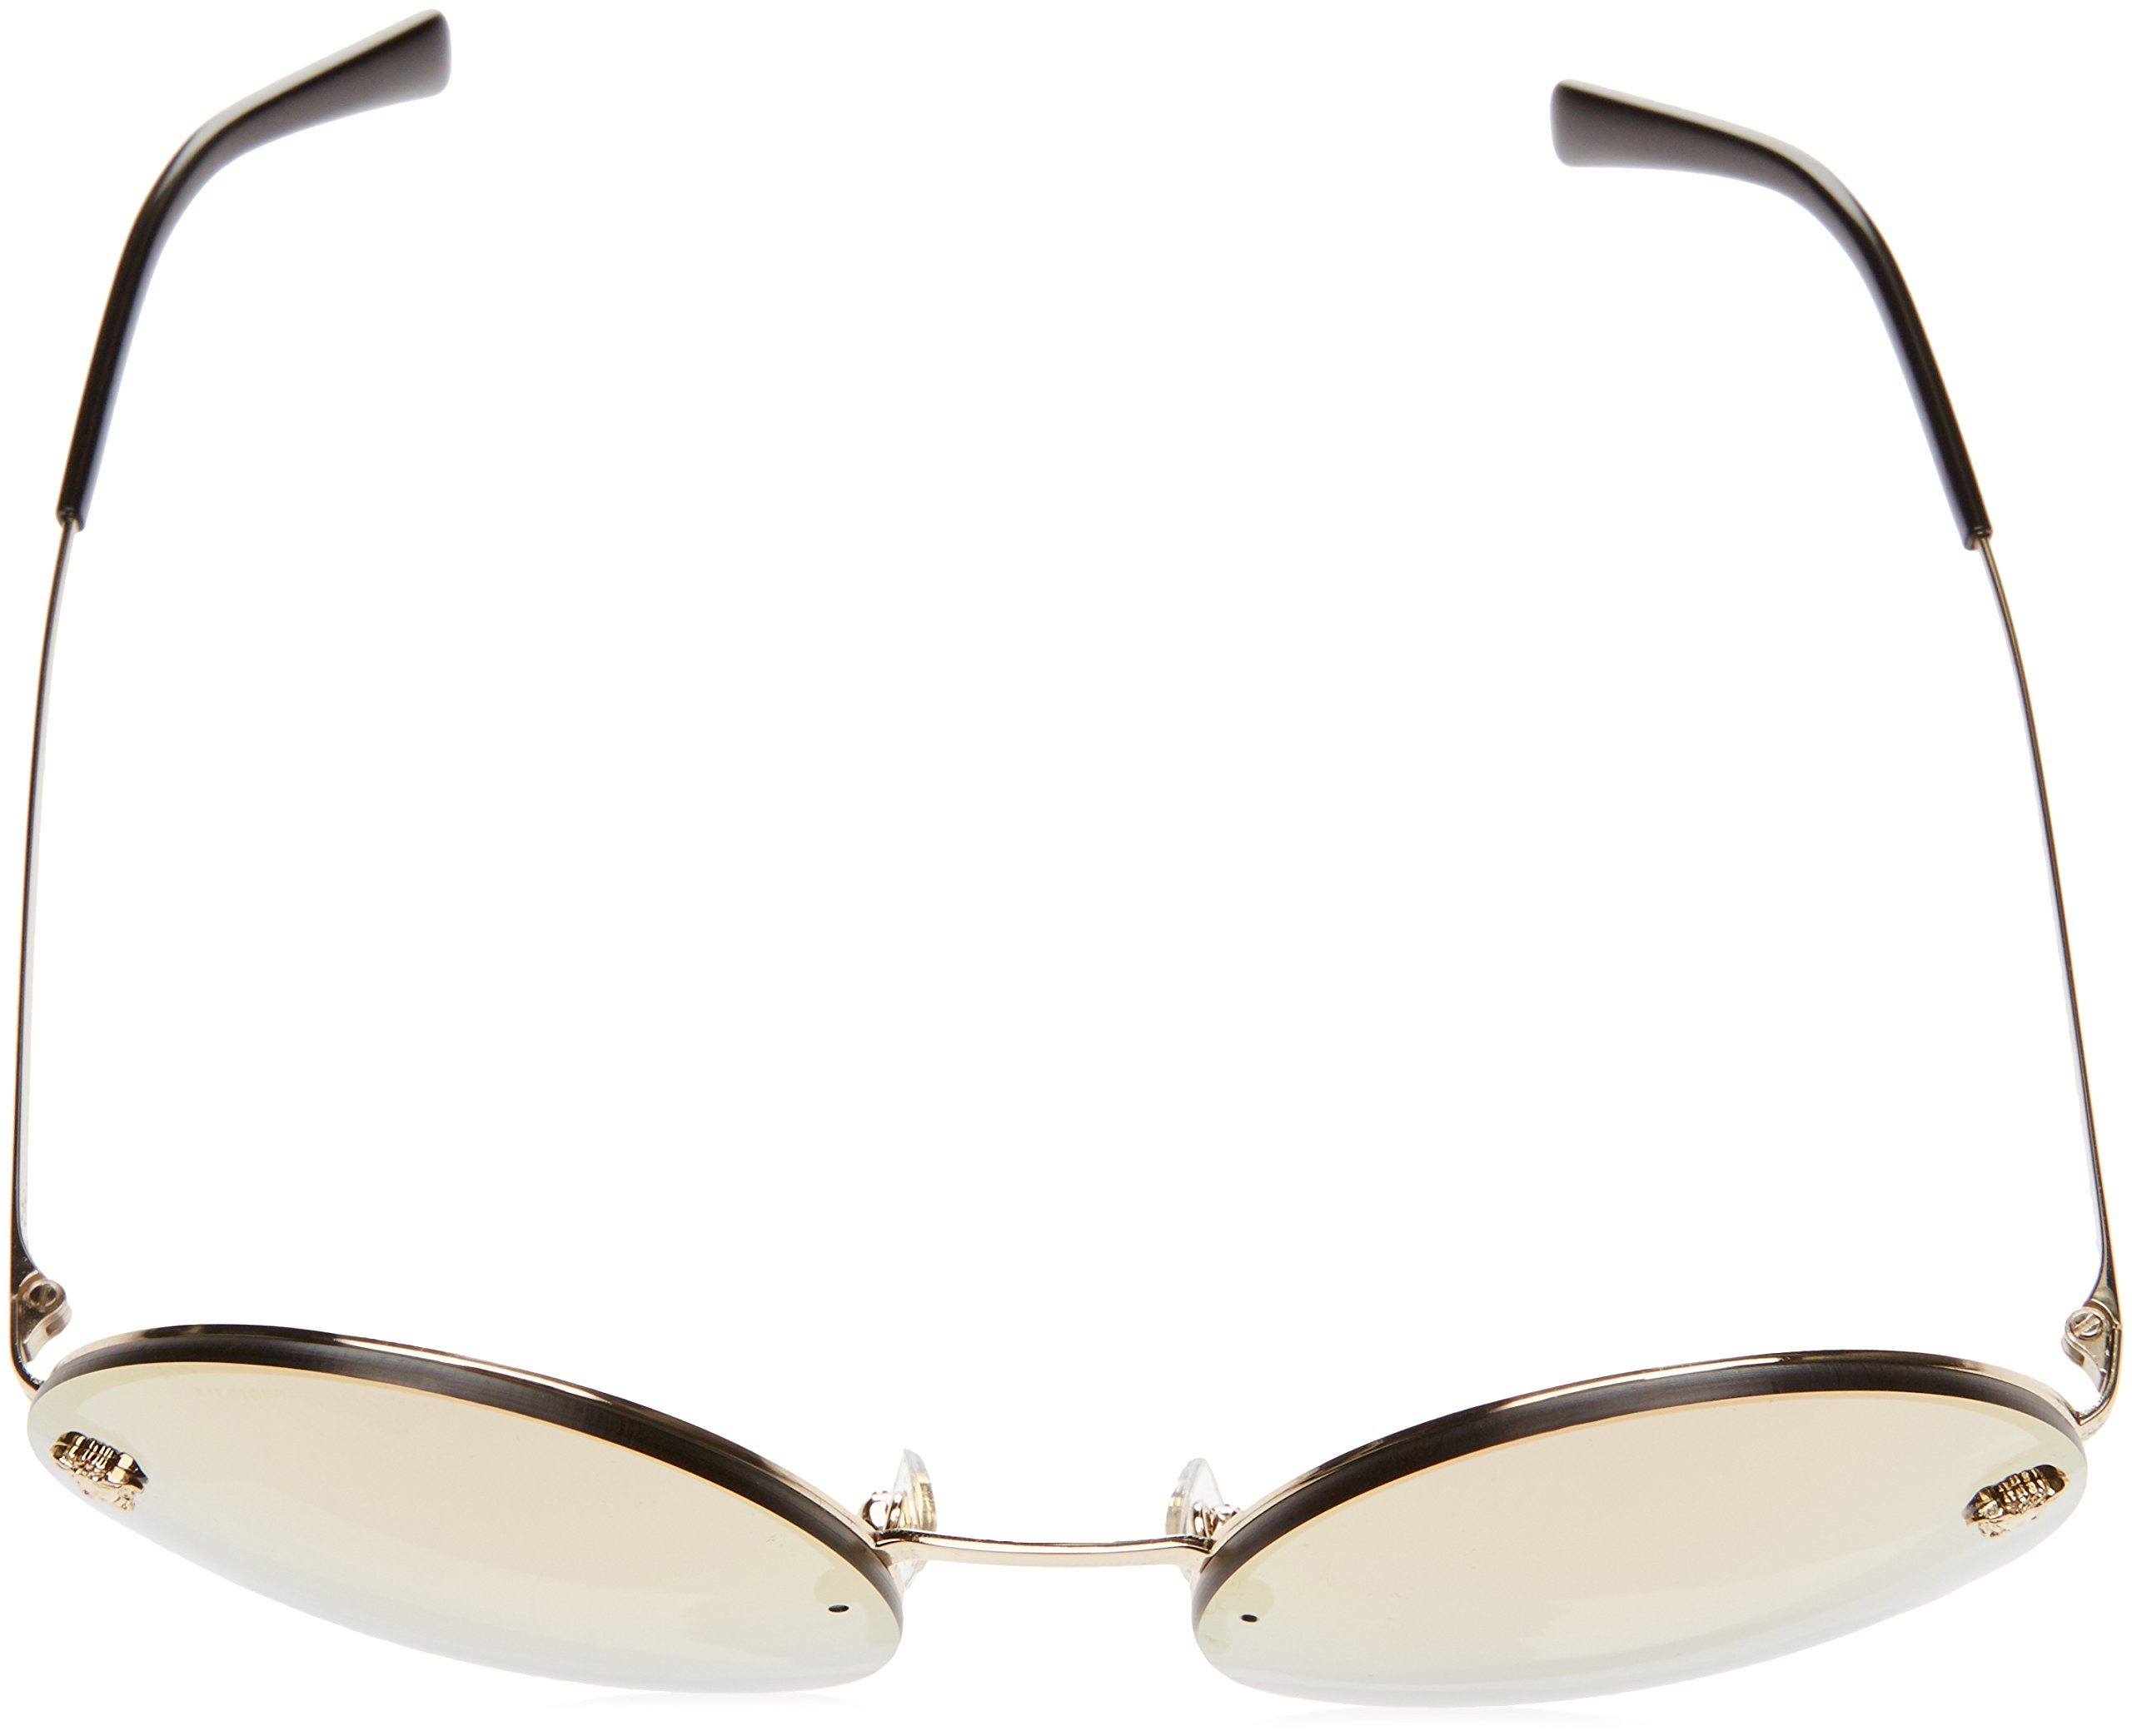 Versace Women's VE2176 Pale Gold/Grey Mirror Rose Gold Sunglasses by Versace (Image #4)